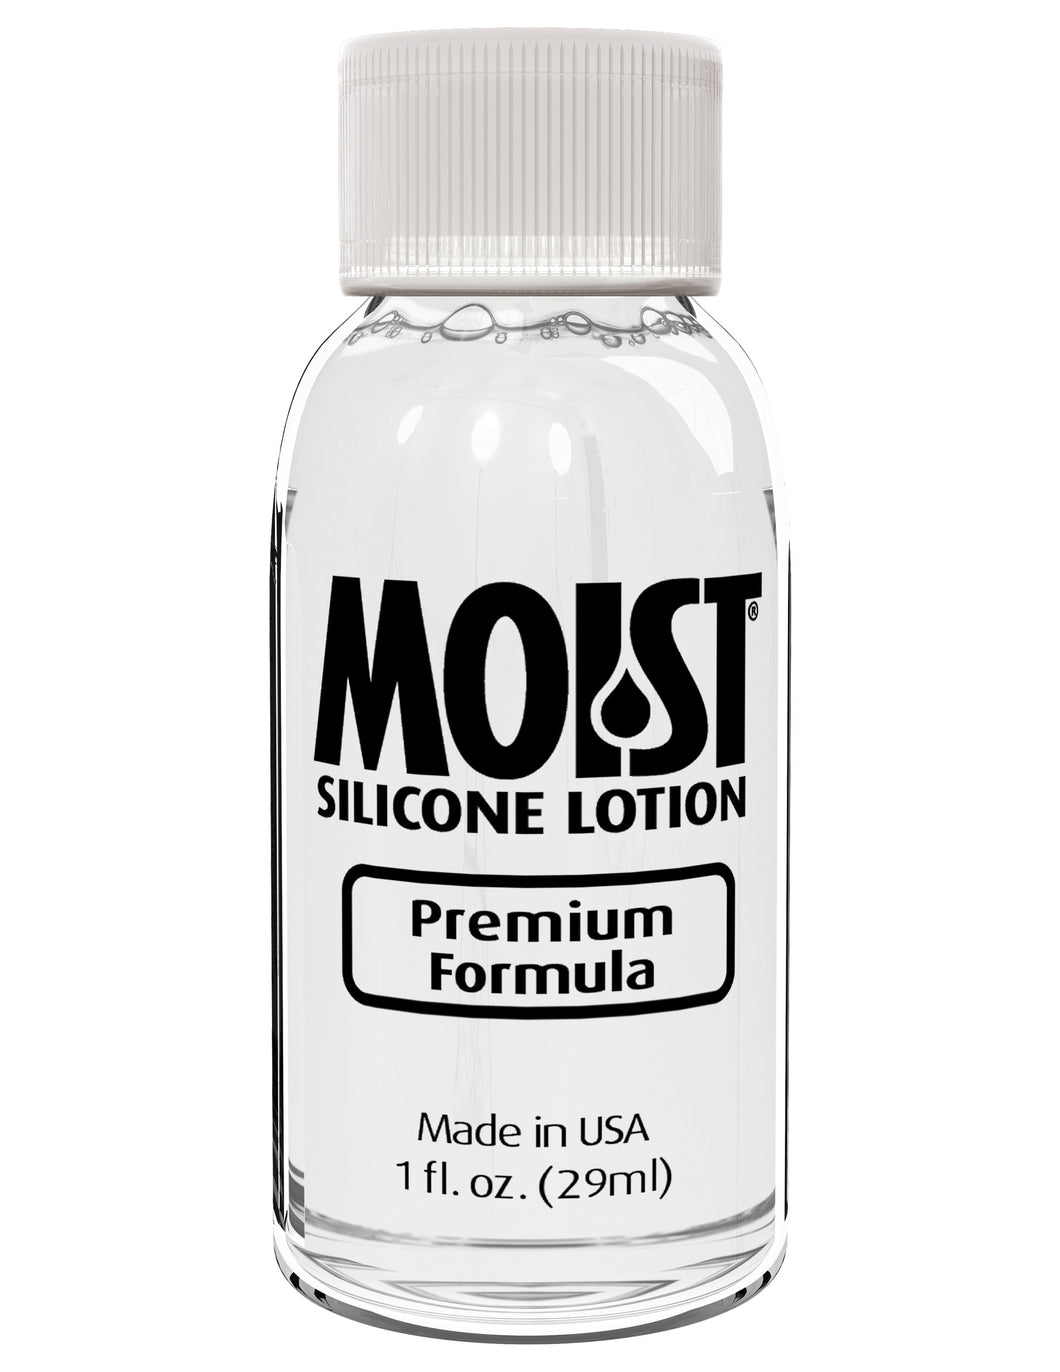 Moist Silicone Lotion - 1 Fl. Oz. - My sheree and More